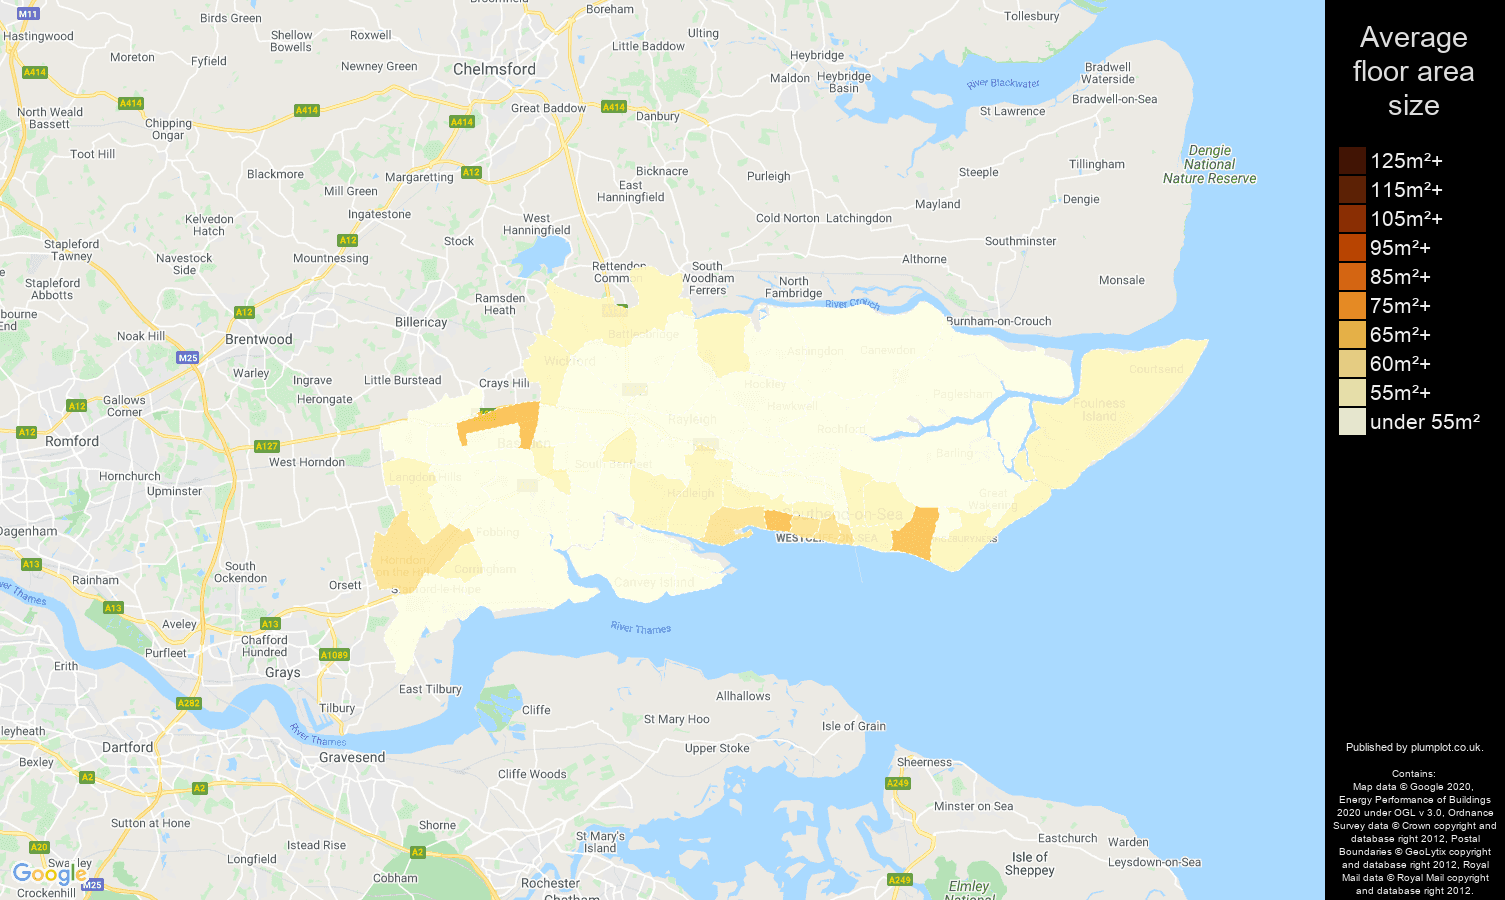 Southend on Sea map of average floor area size of flats